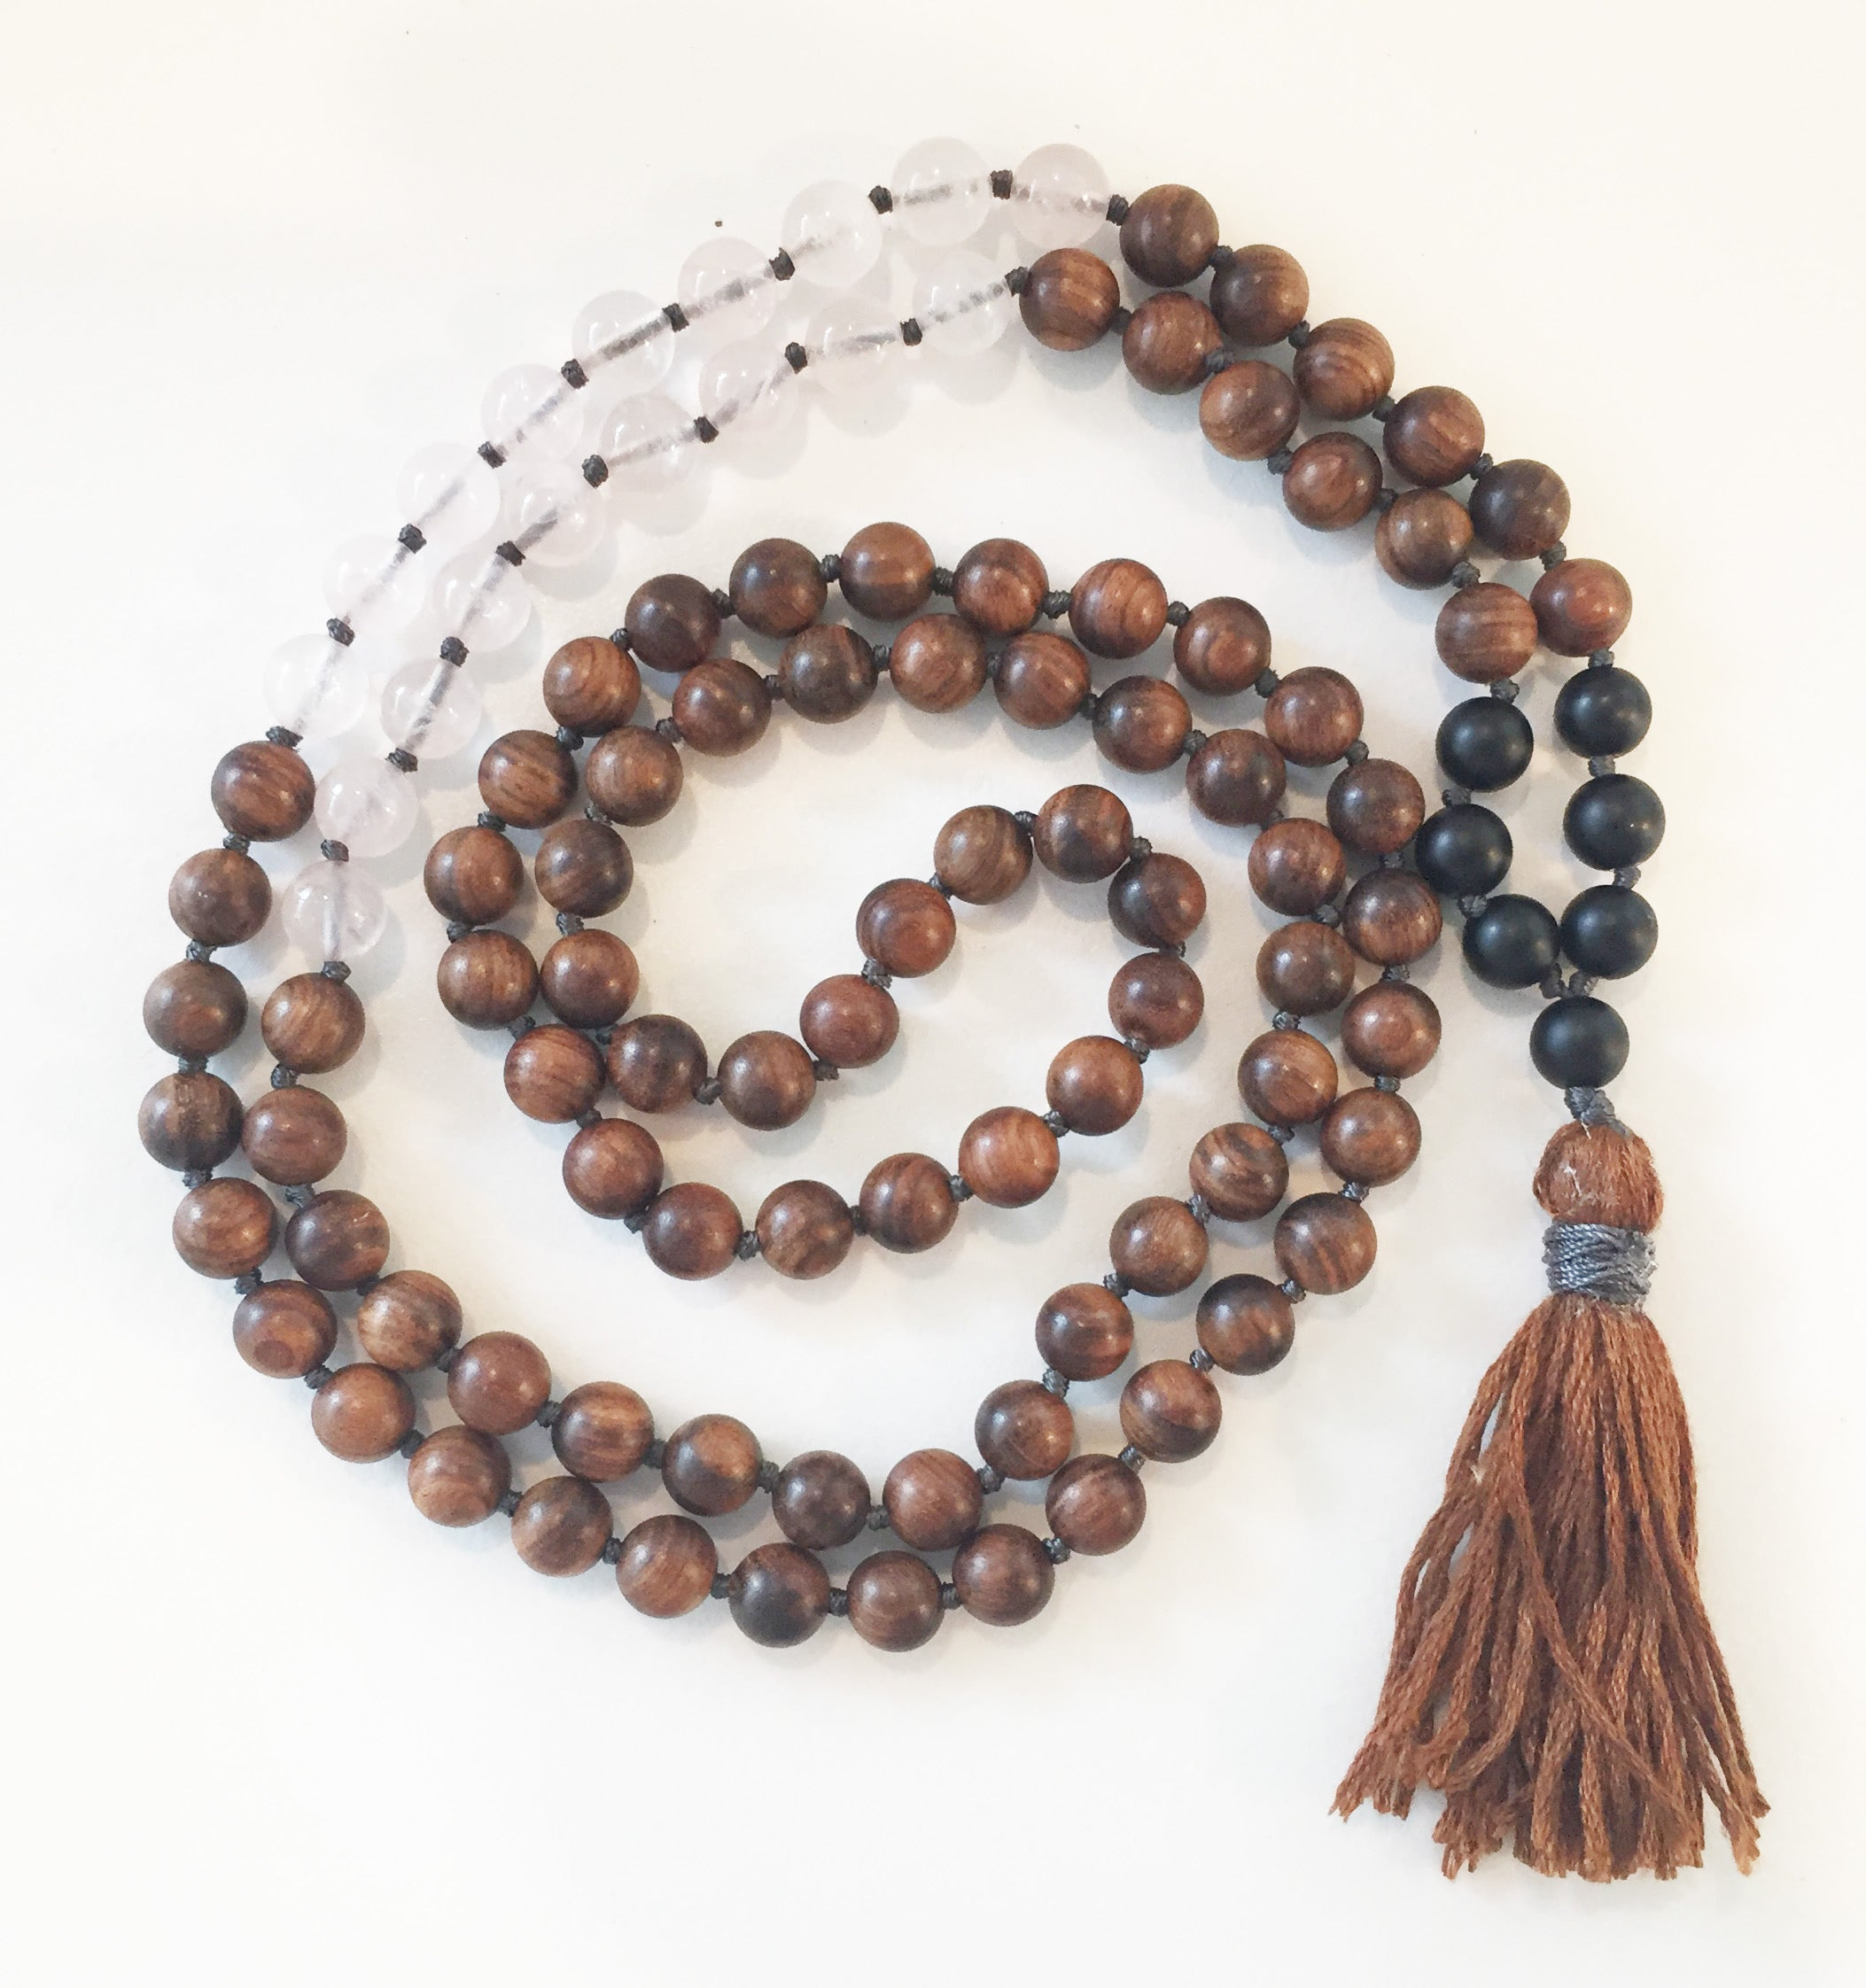 8mm Pear Wood & Rose Quartz 108 Knotted Mala Necklace with Colored Tassel